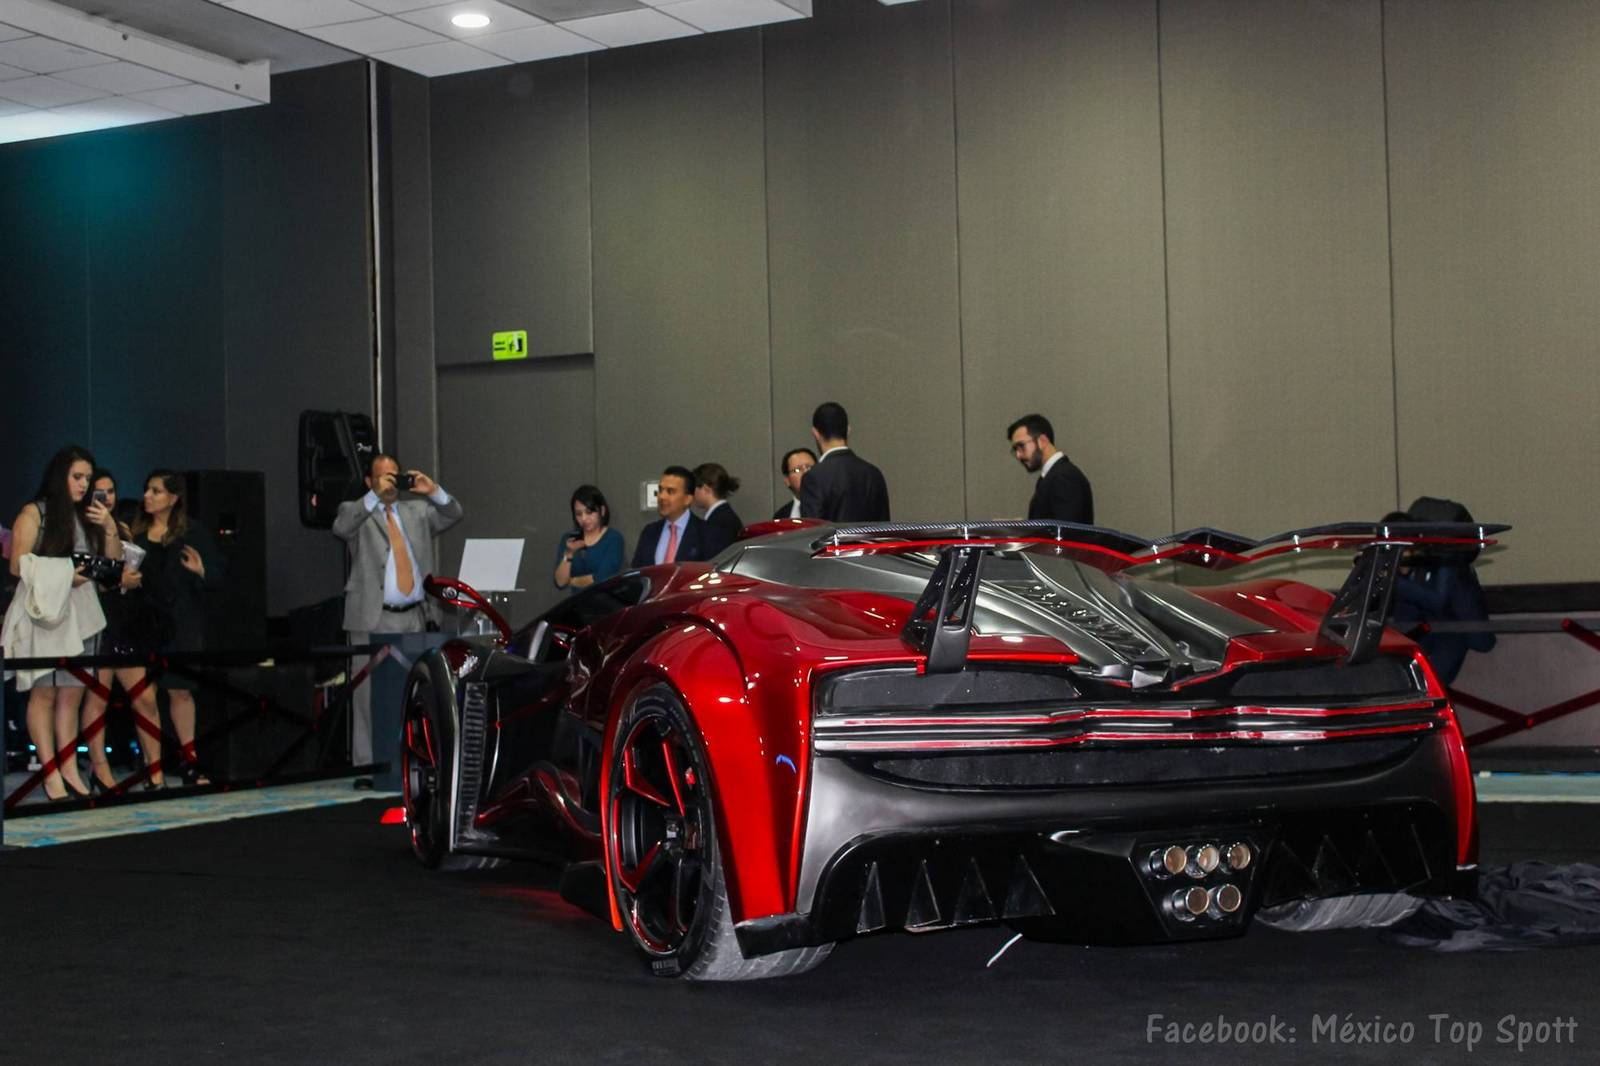 Mexico's First Hypercar, the Inferno Exotic Car, Isn't ...